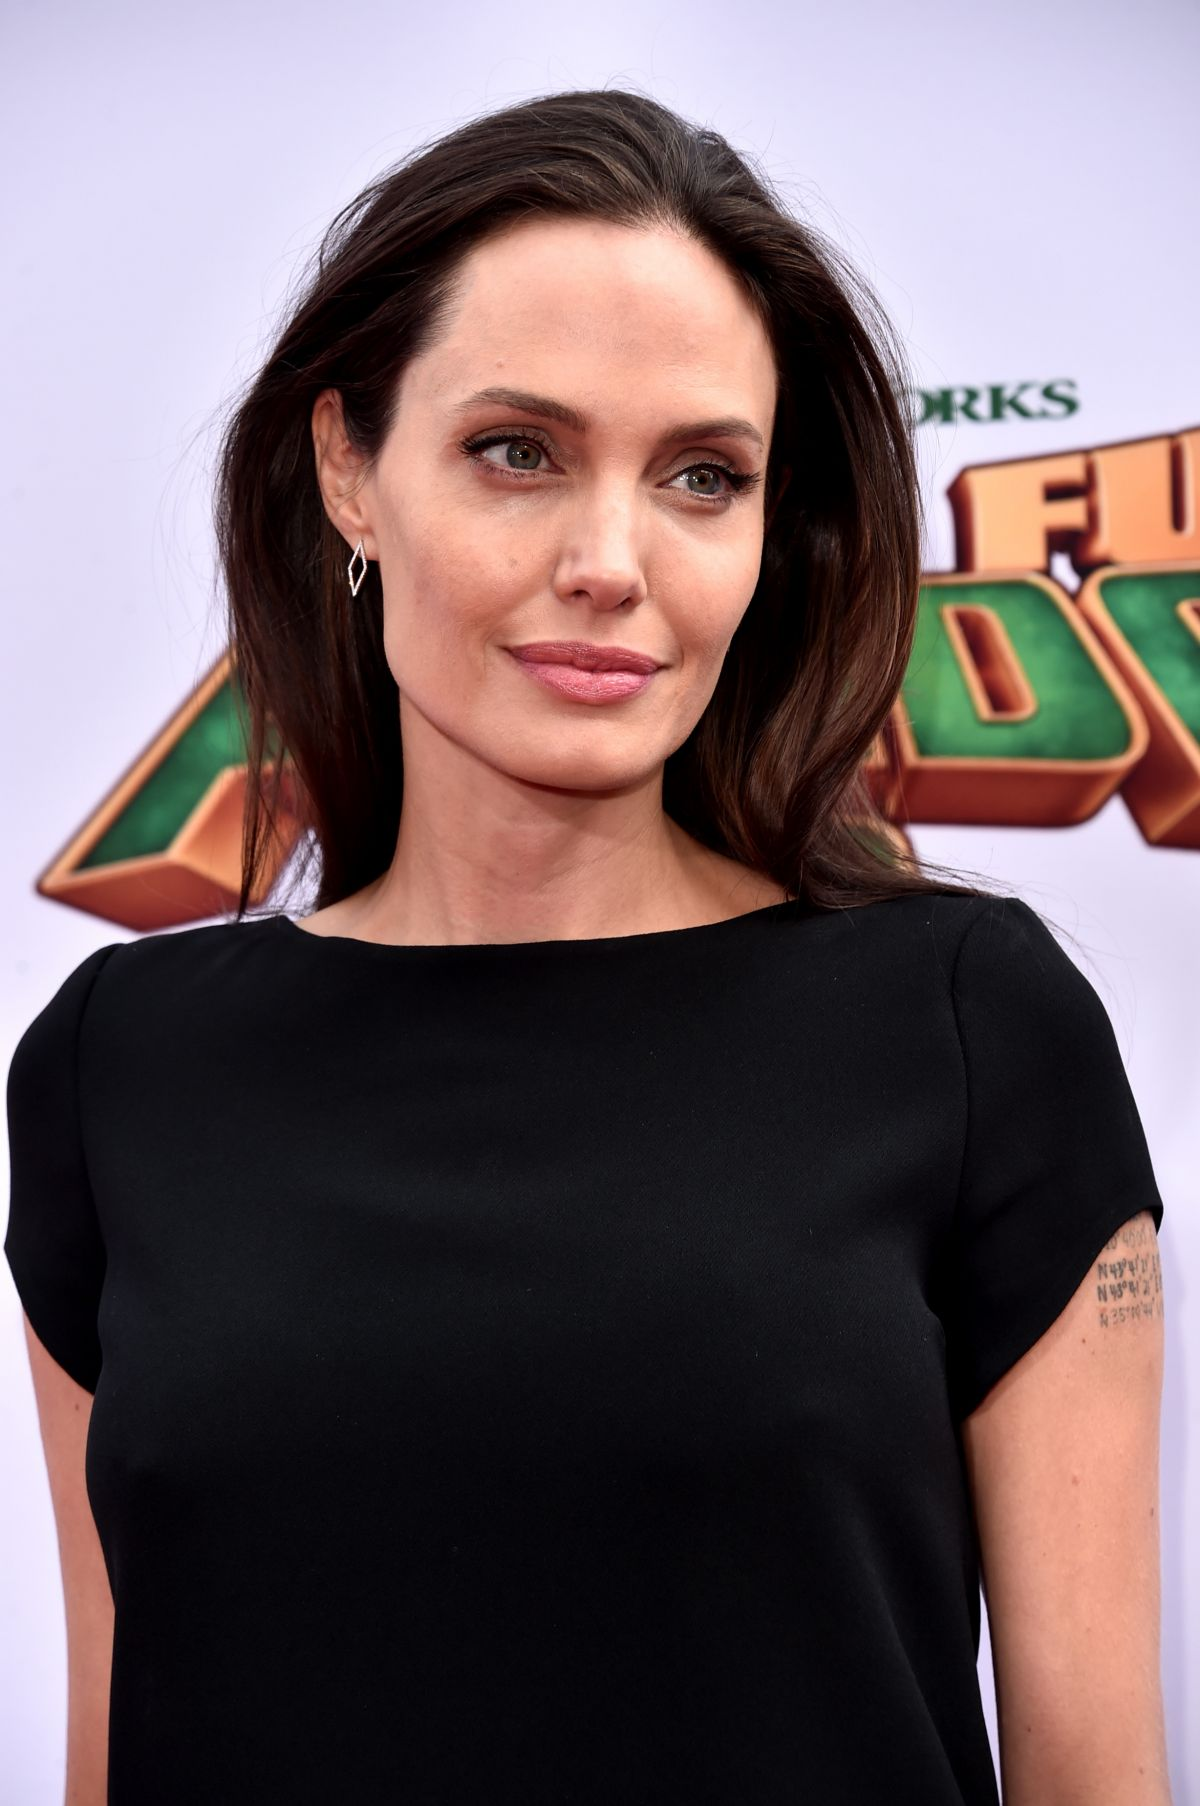 ANGELINA JOLIE at Kung Fu Panda 3 Premiere in Hollywood 01/16/2016